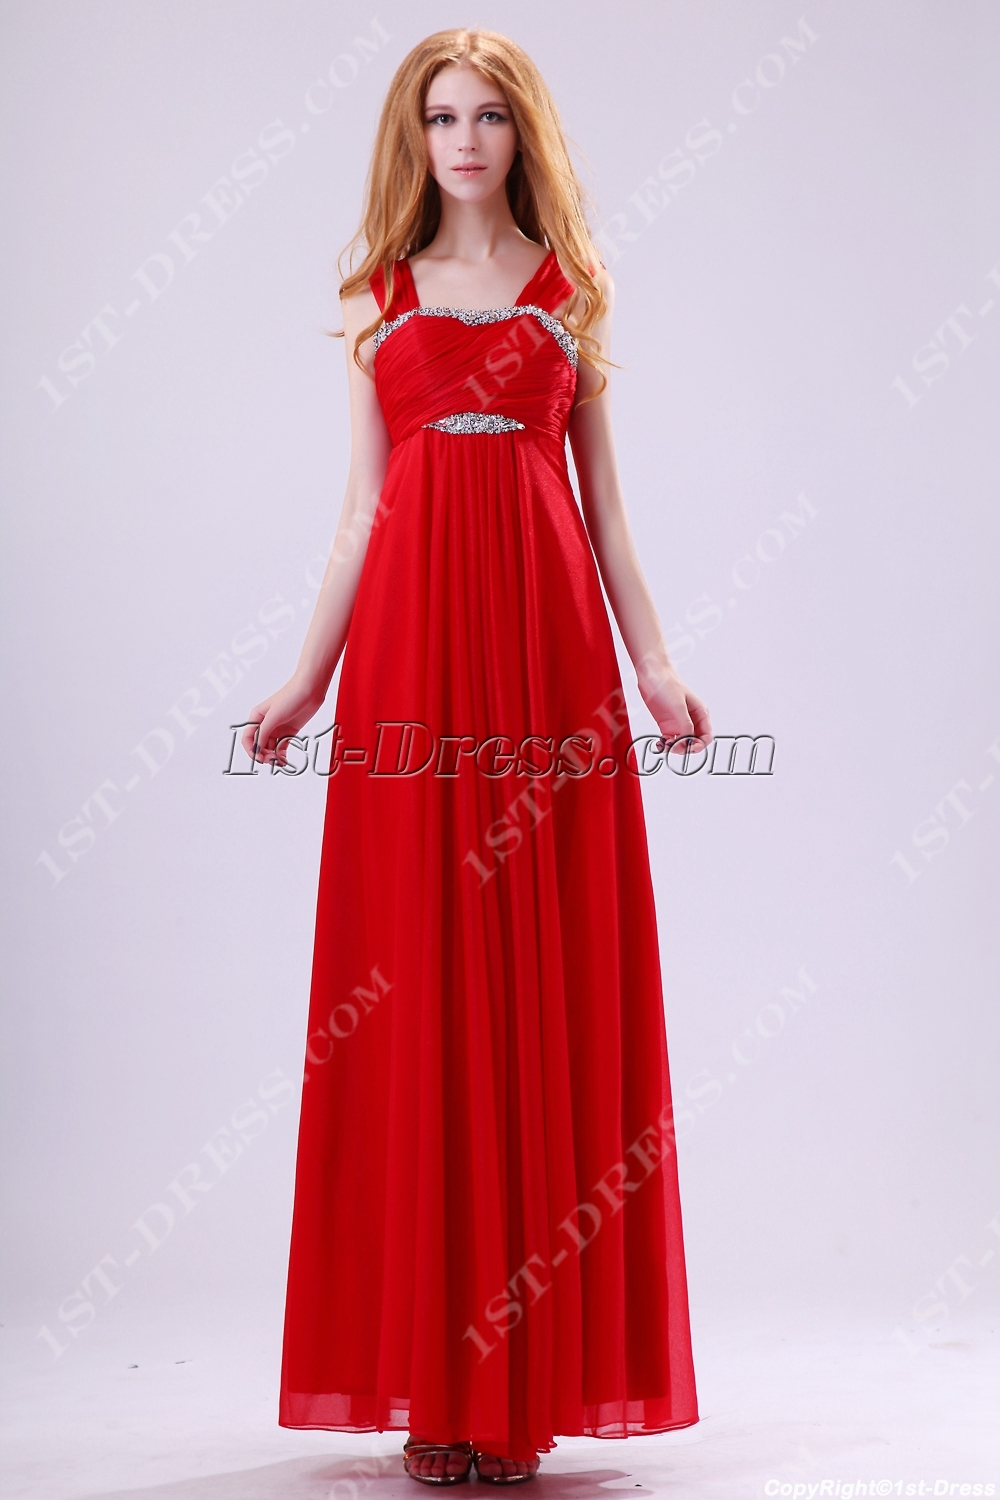 ... Dresses >Red Straps Plus Size Graduation Dresses for 8th Grade Girls